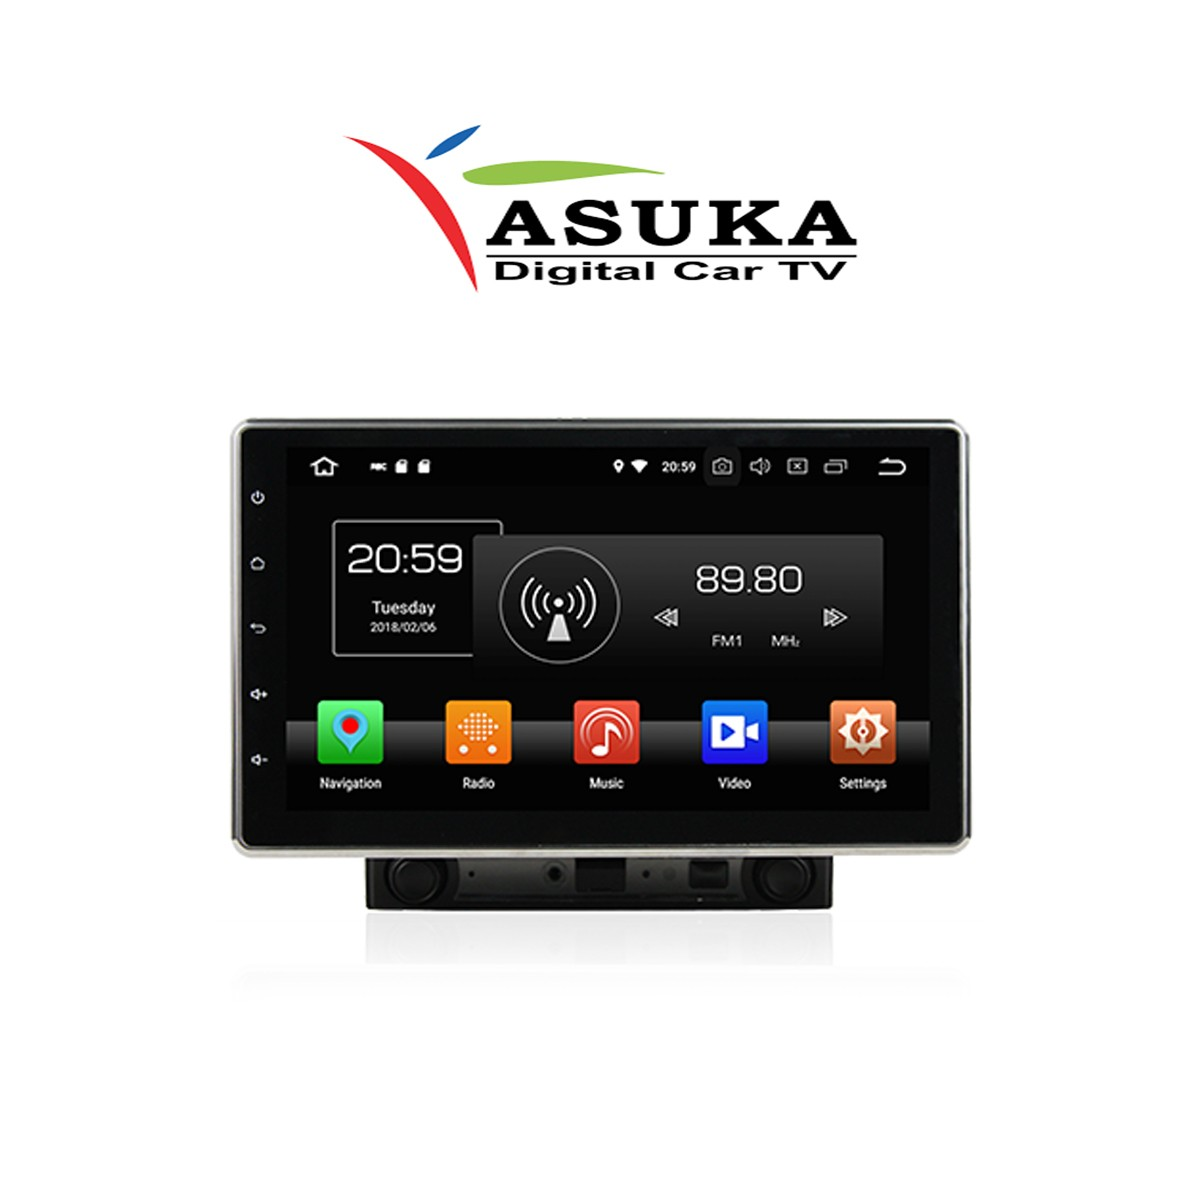 ASUKA AK 2000 - HEAD UNIT 2DIN 10 INCH ANDROID UNIVERSAL